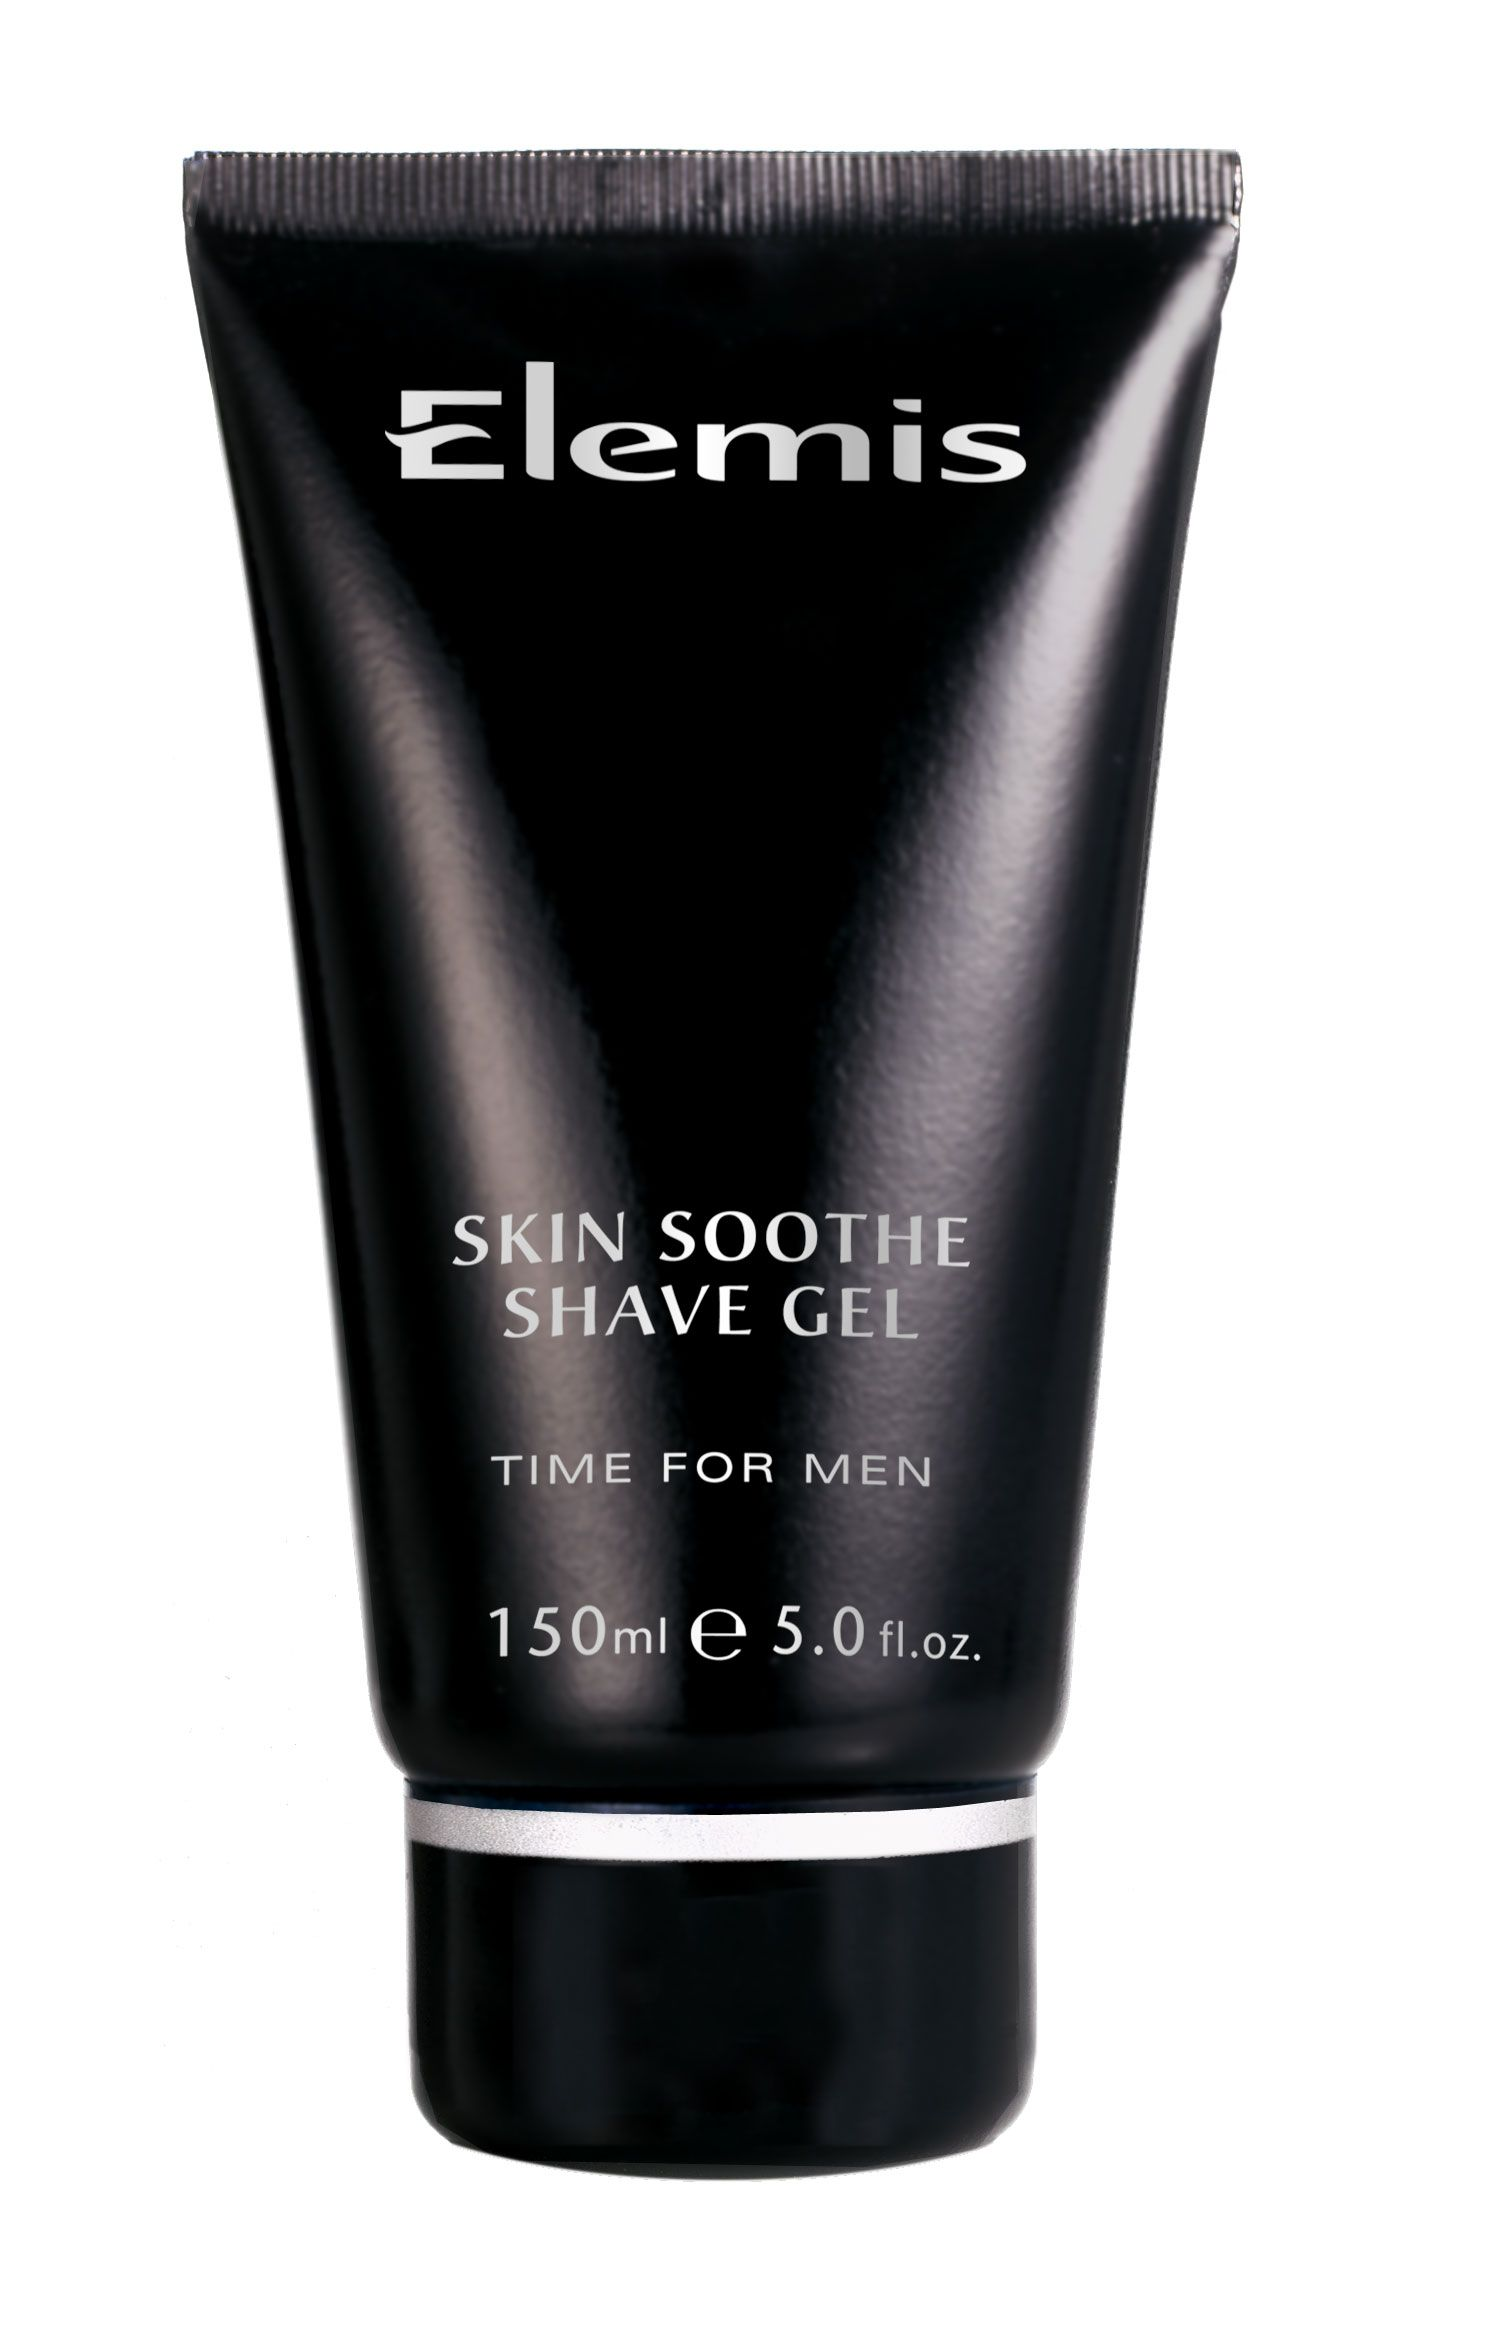 Time for men Skin Sooth Shave Gel